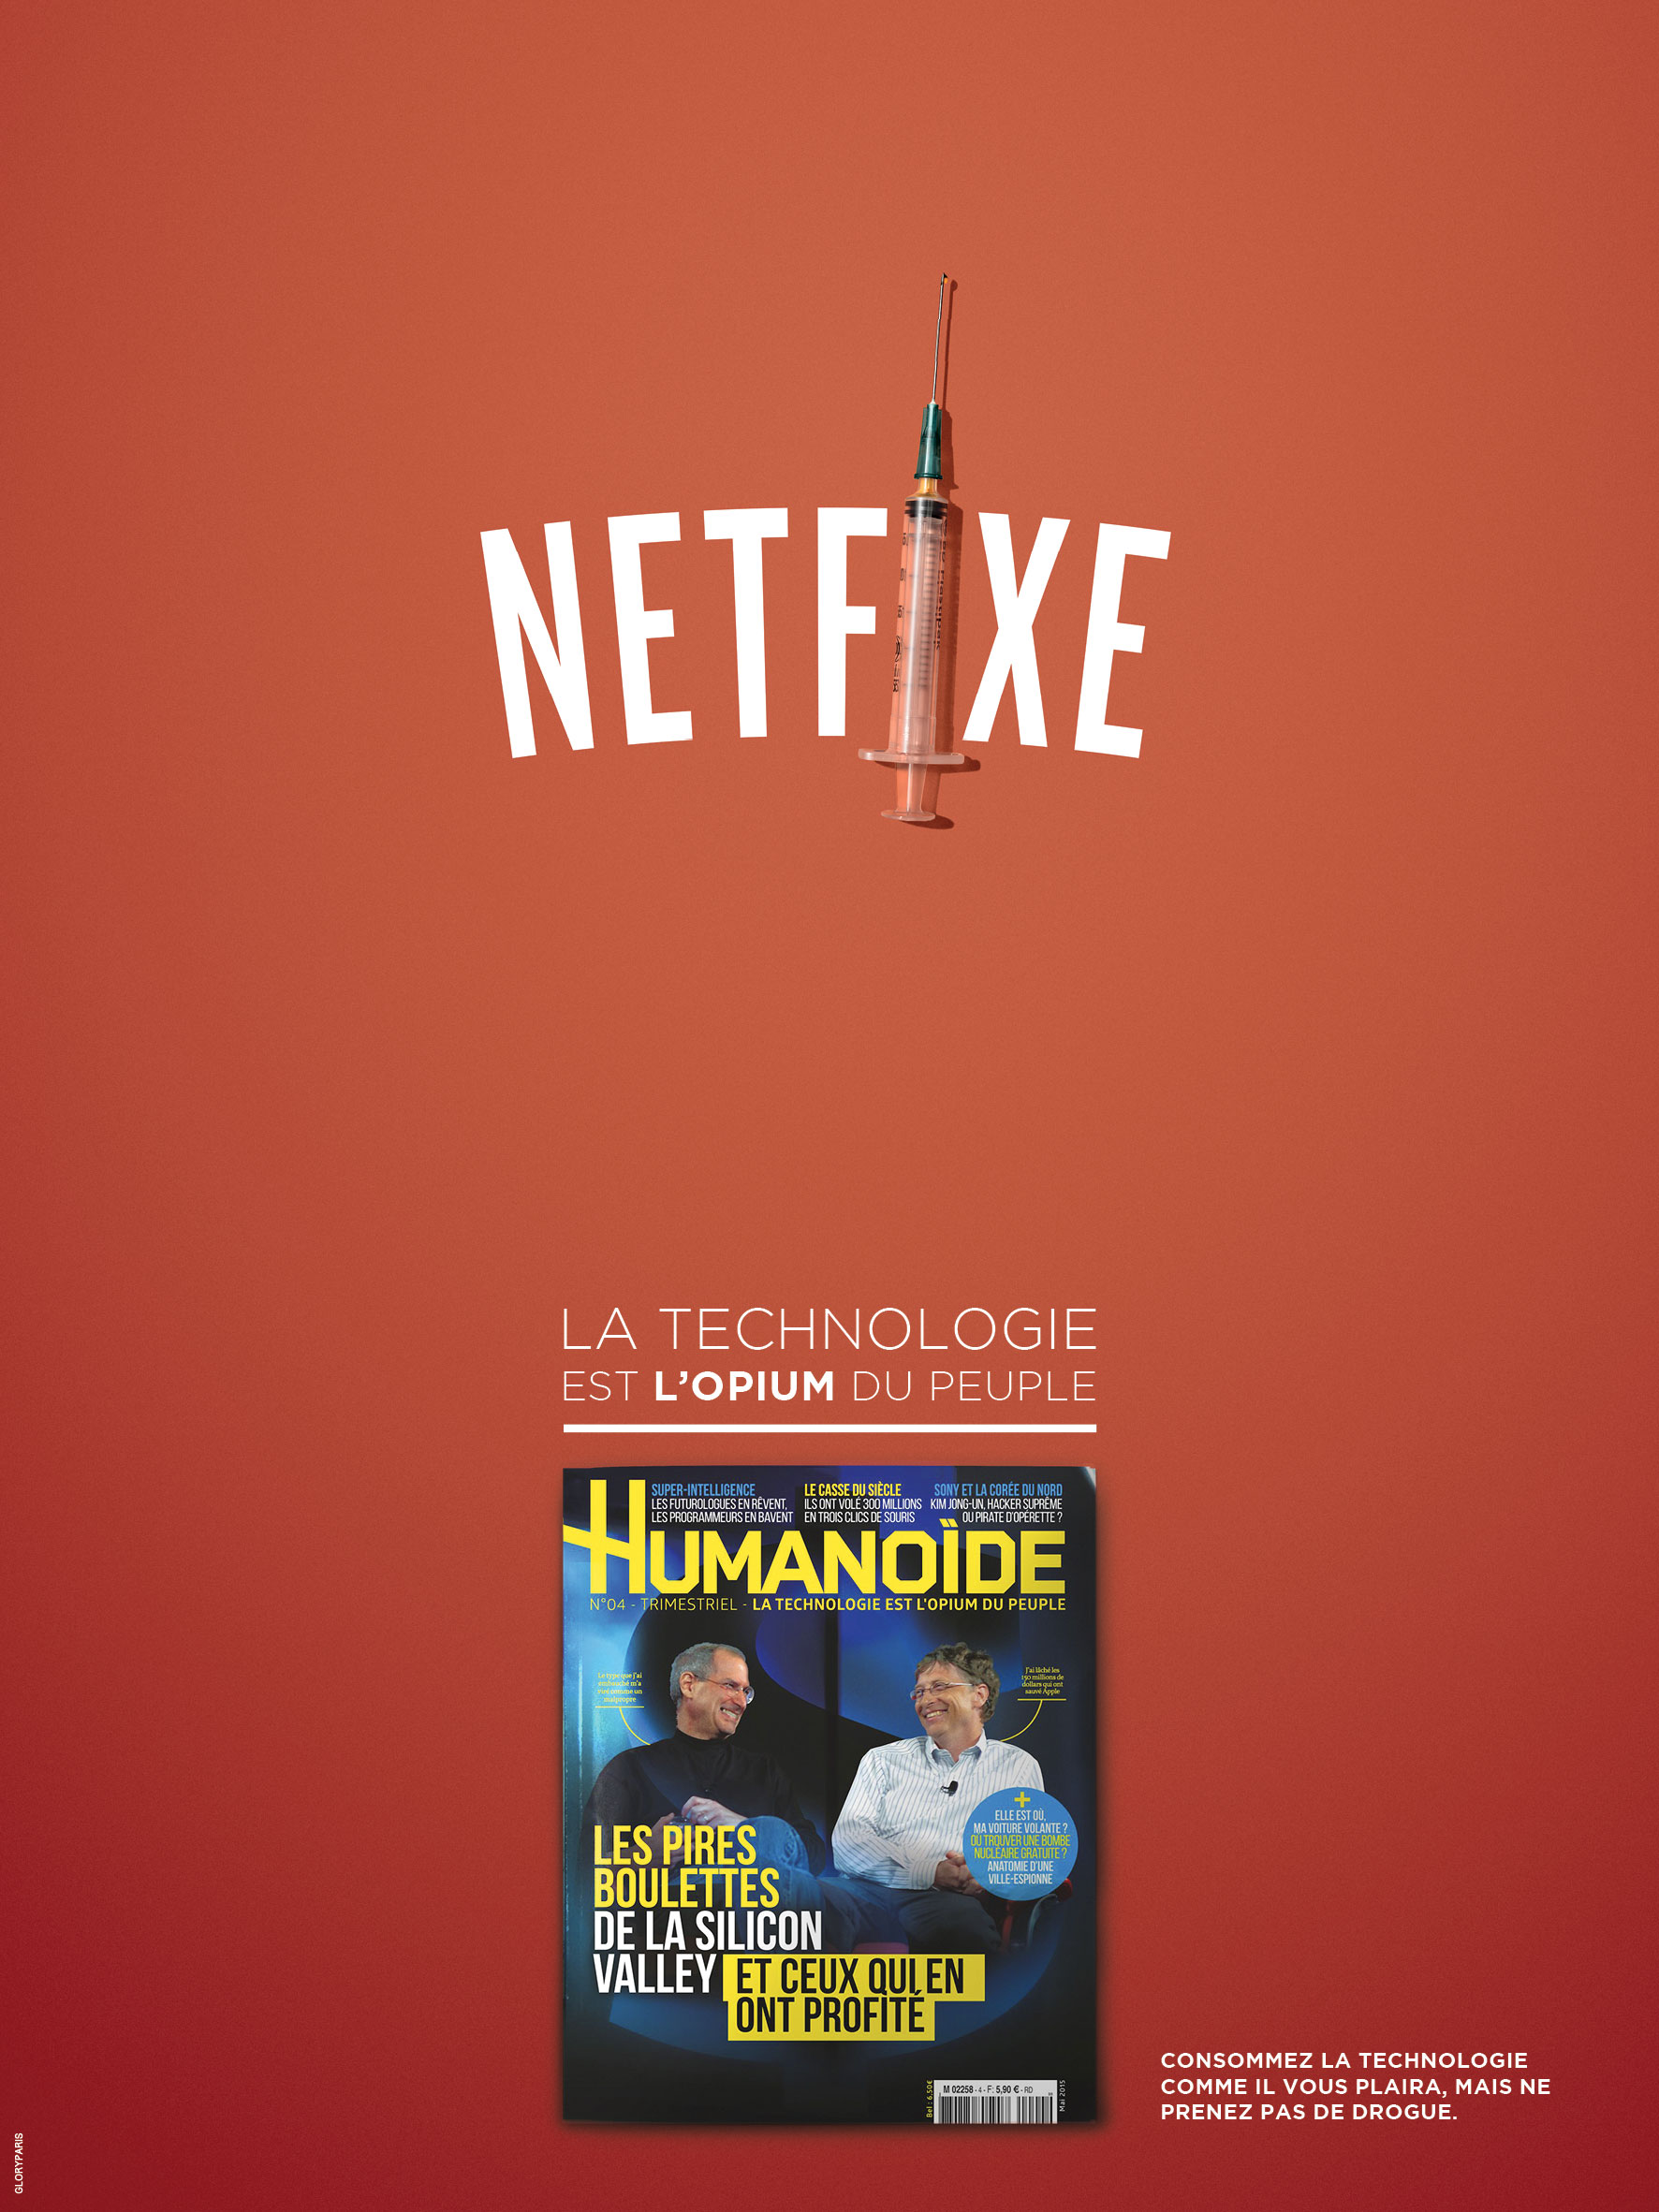 dans-ta-pub-humanoide-print-publicité-affiche-technologie-web-drogue-addiction-digital-2